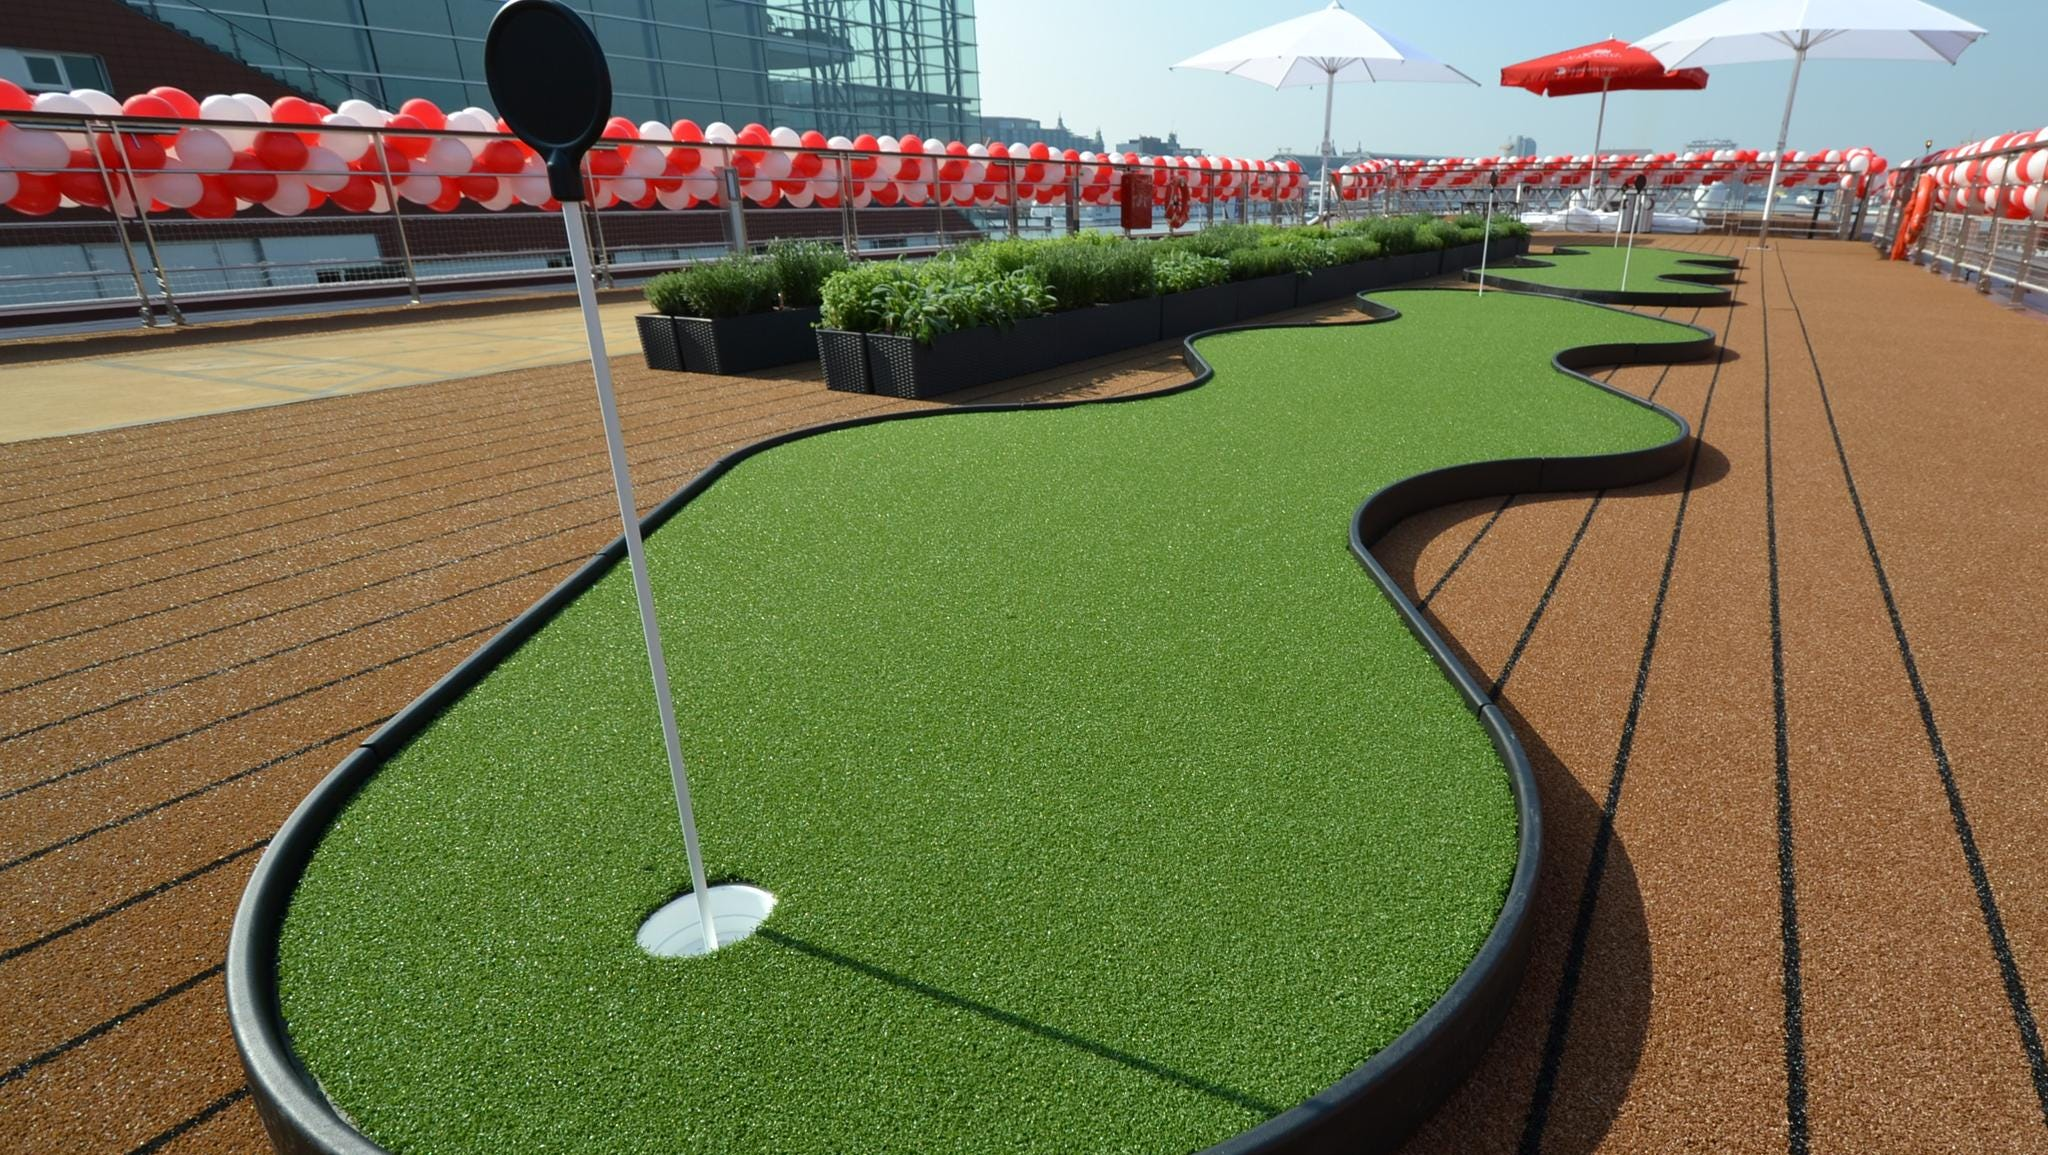 The Sun Deck also offers a putting green as well as a giant chess board and a shuffleboard court.